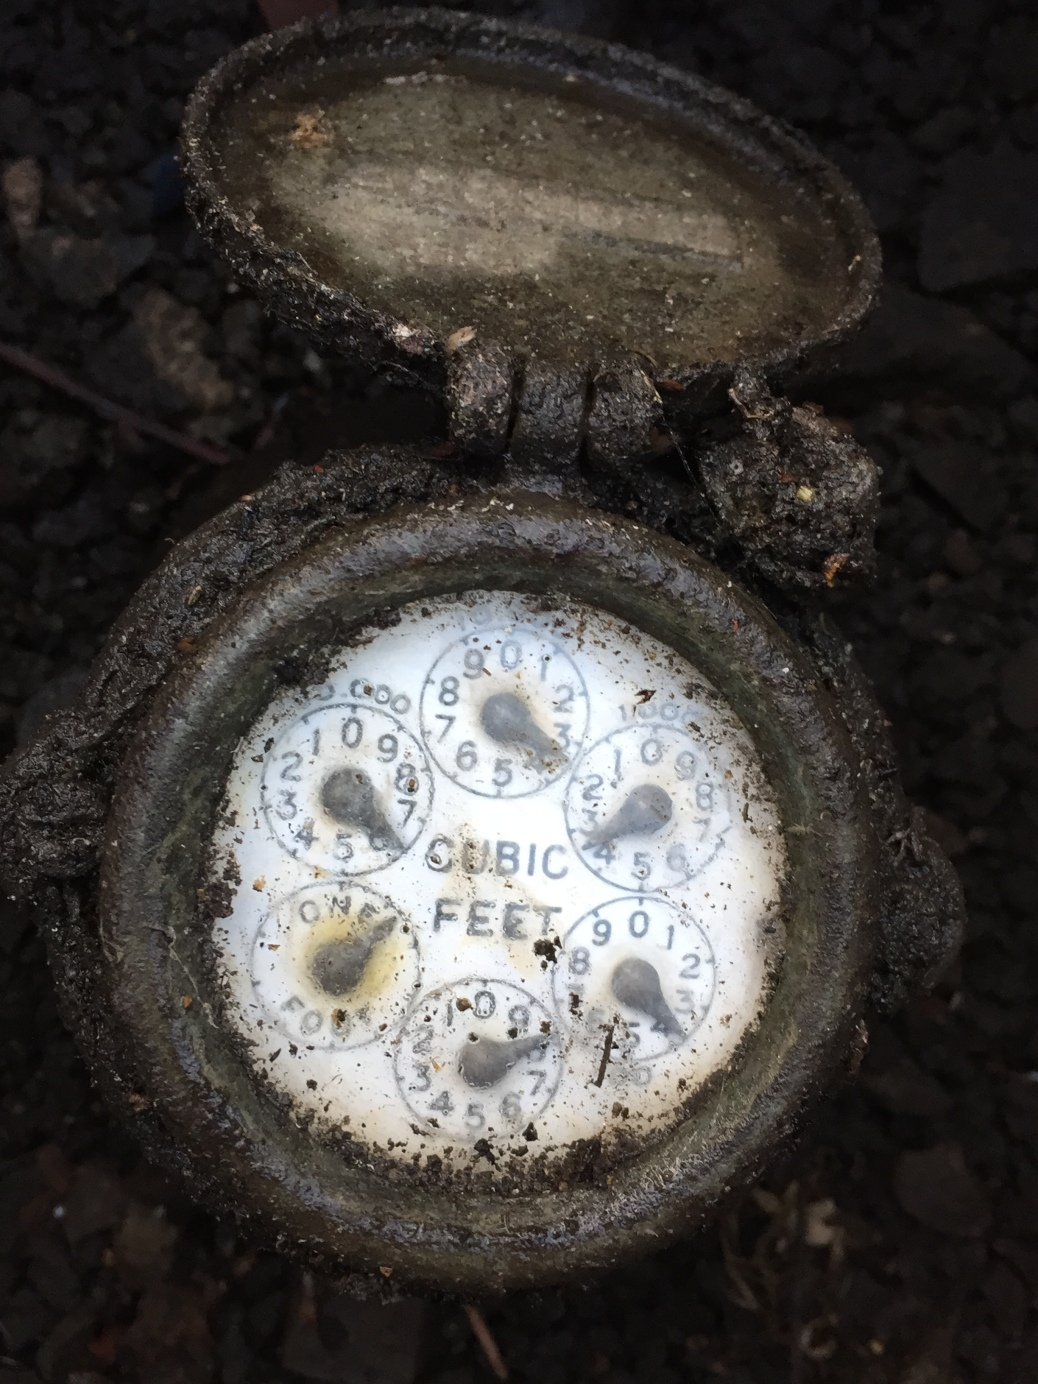 Be honest, when was the last time you read your water meter? Do you even know where it is?